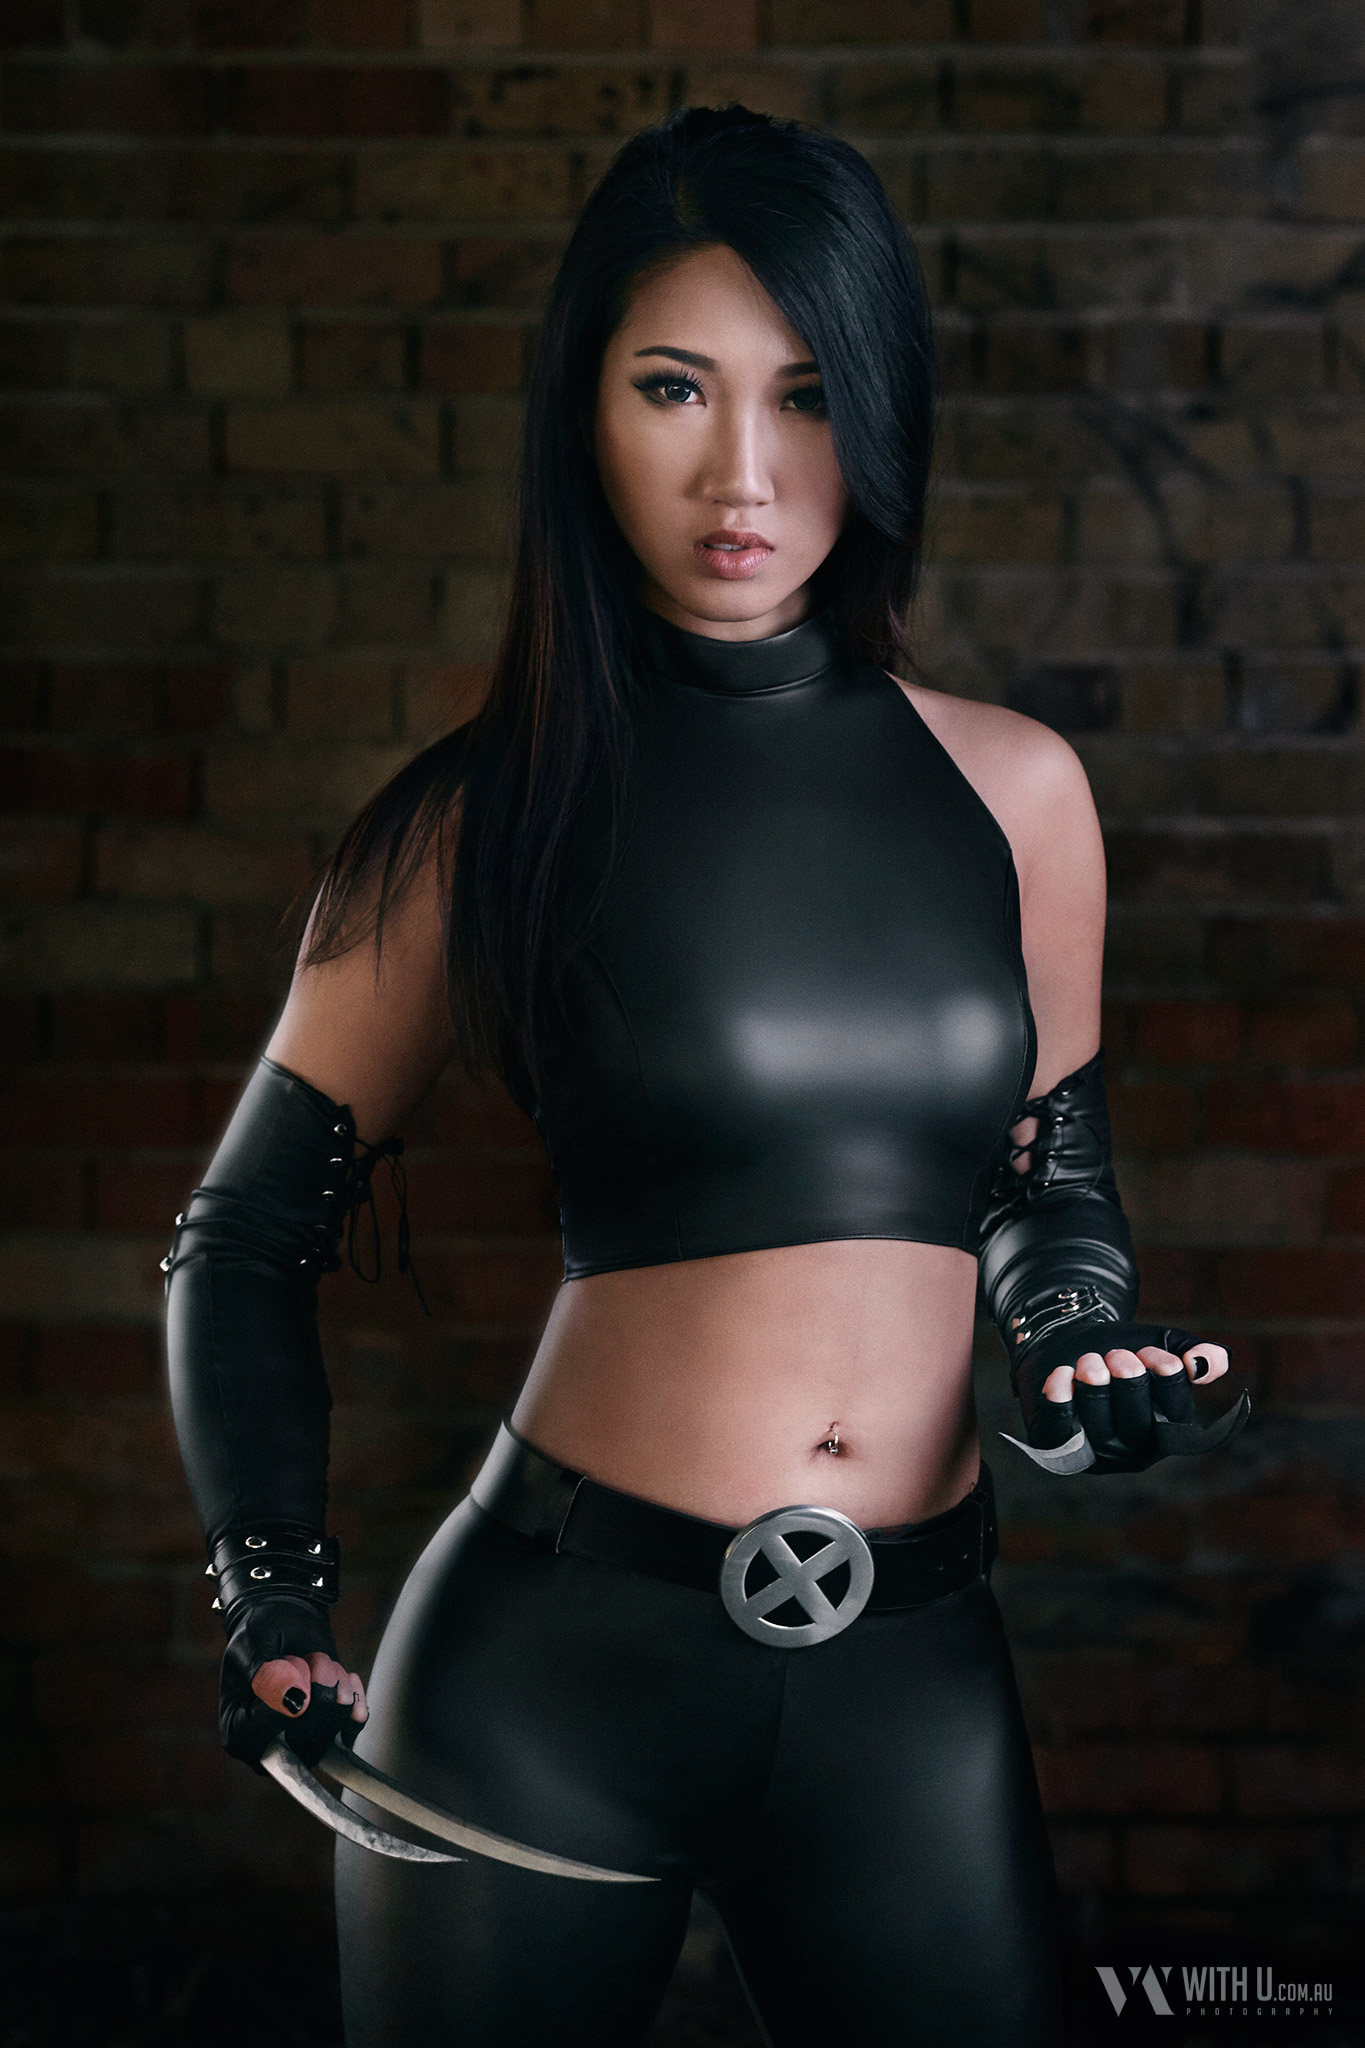 X-23-Perth-portraits-Cosplay-Withu-Photography-02-small